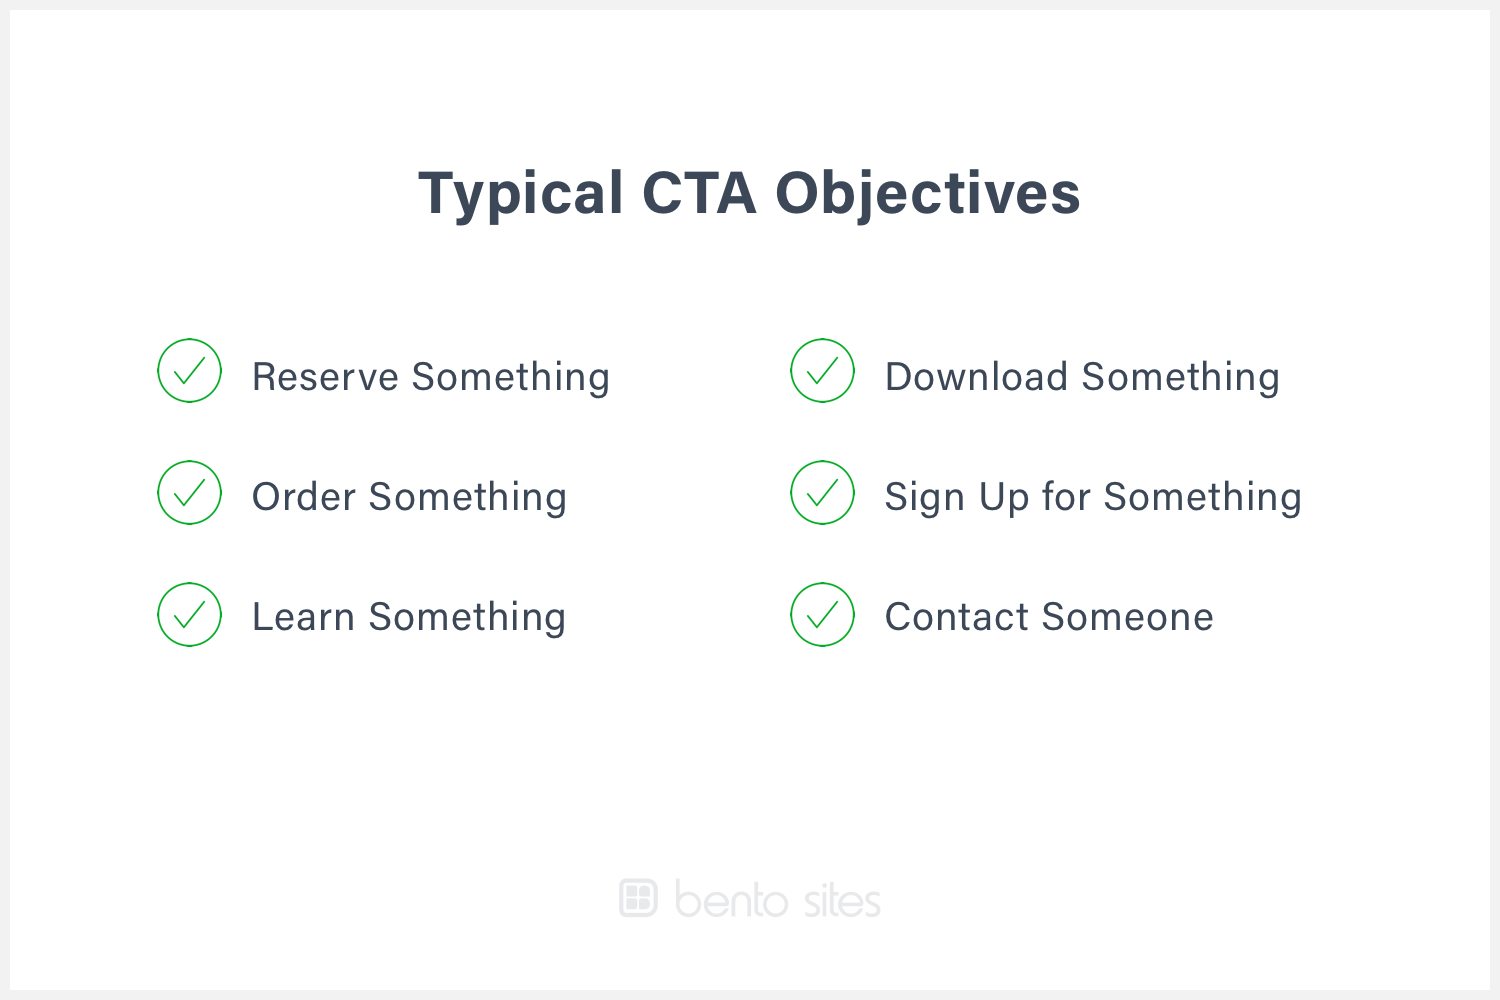 List of typical call to action objectives.